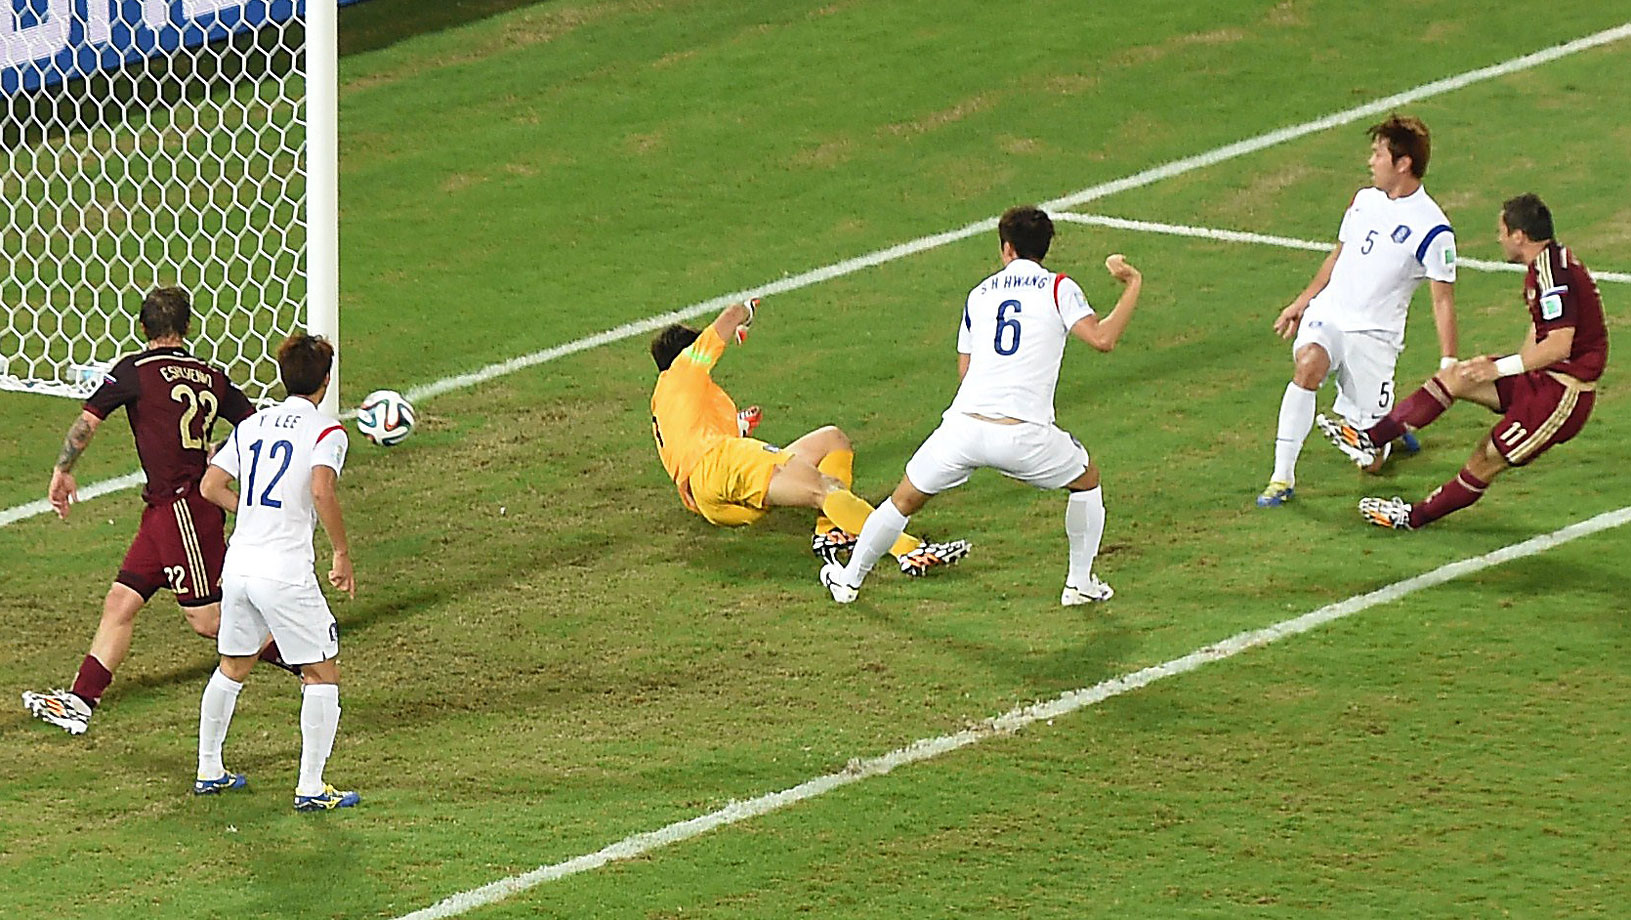 Russia's forward Alexander Kerzhakov scores during the 1-1 draw with South Korea in the Pantanal Arena in Cuiaba.